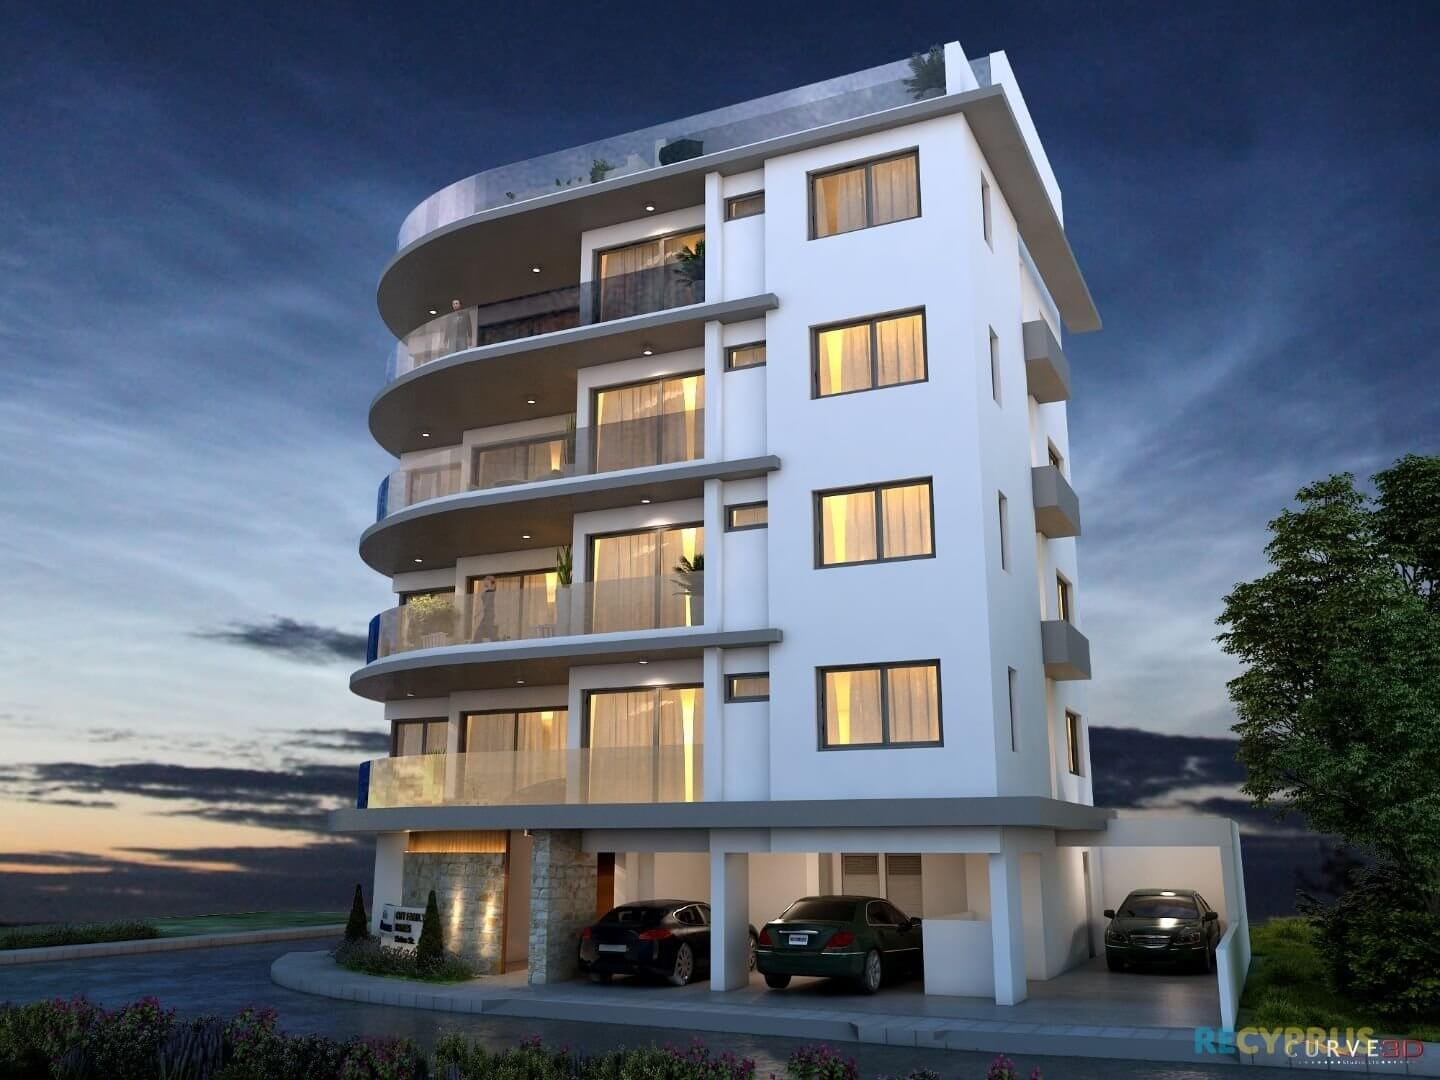 City Center Apartment for Sale 3 bedrooms Larnaca Cyprus ...